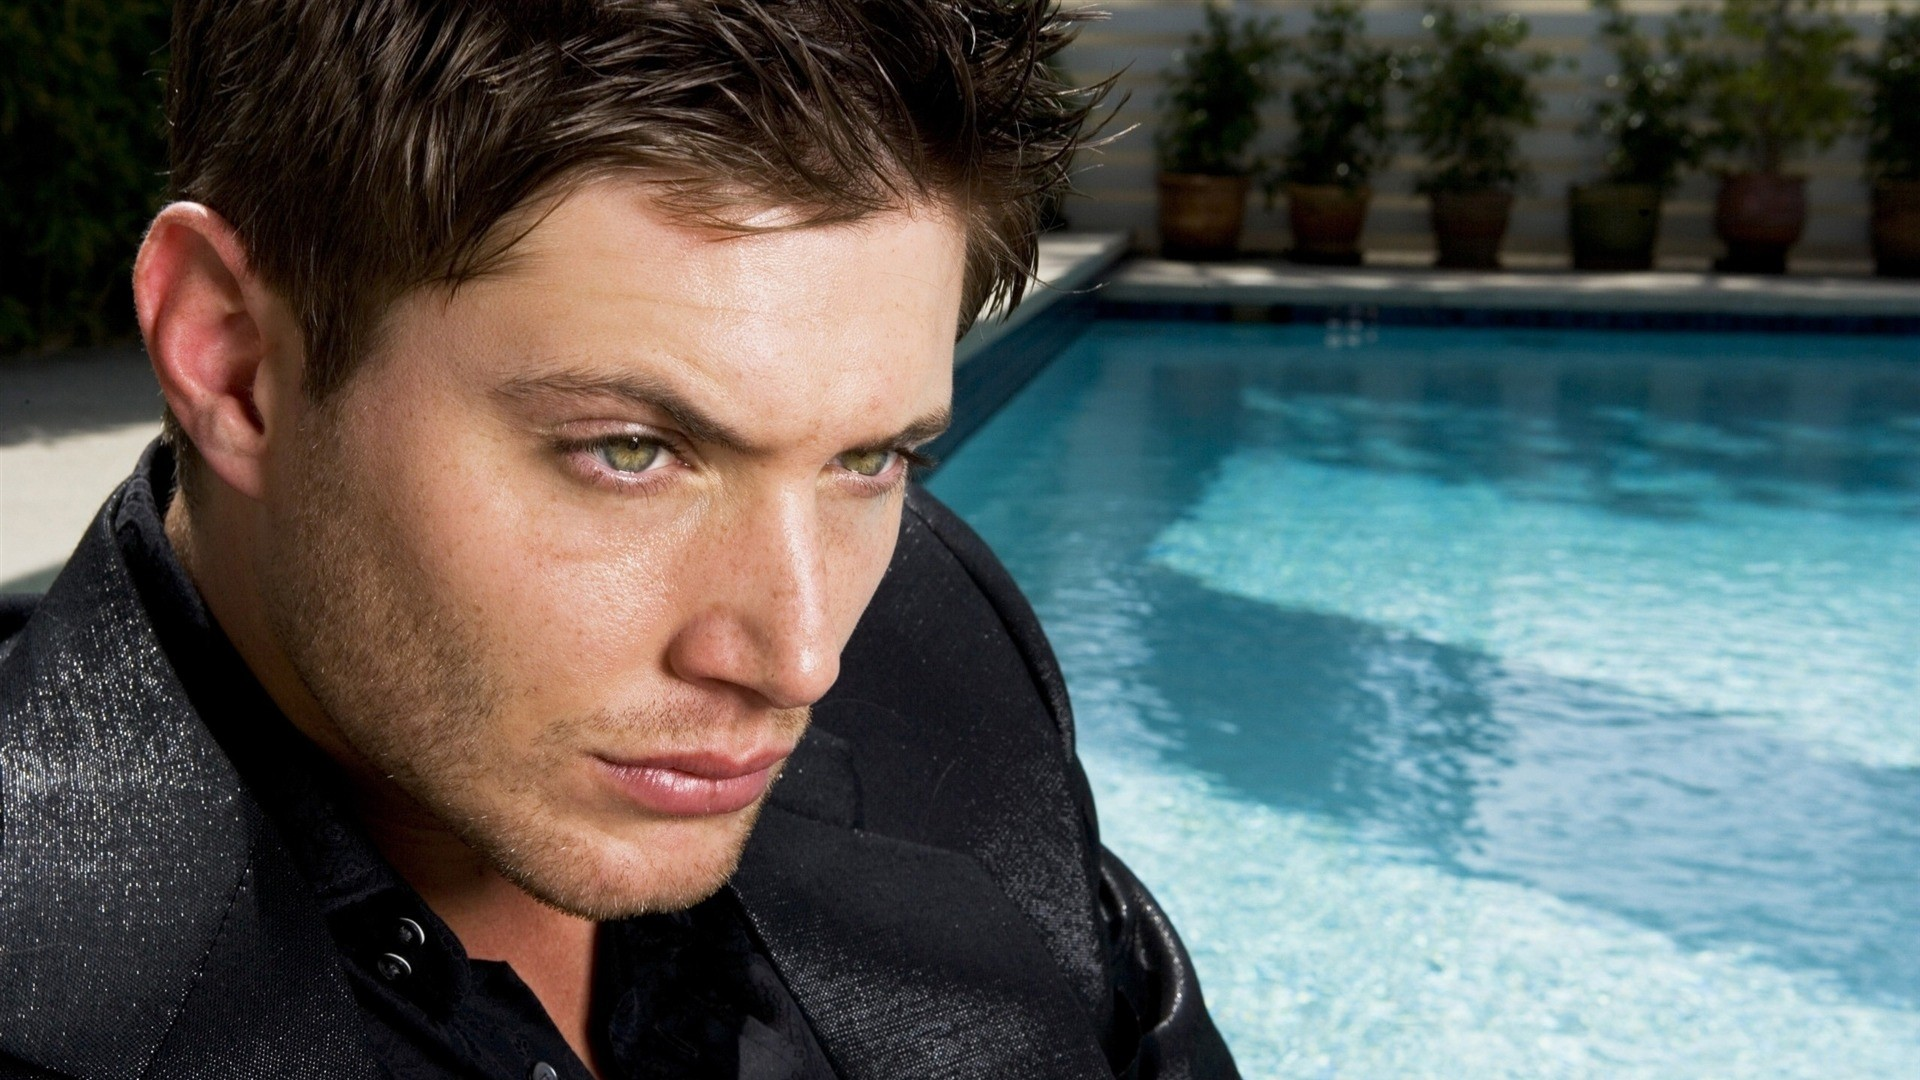 Jensen Ackles Wallpaper Download